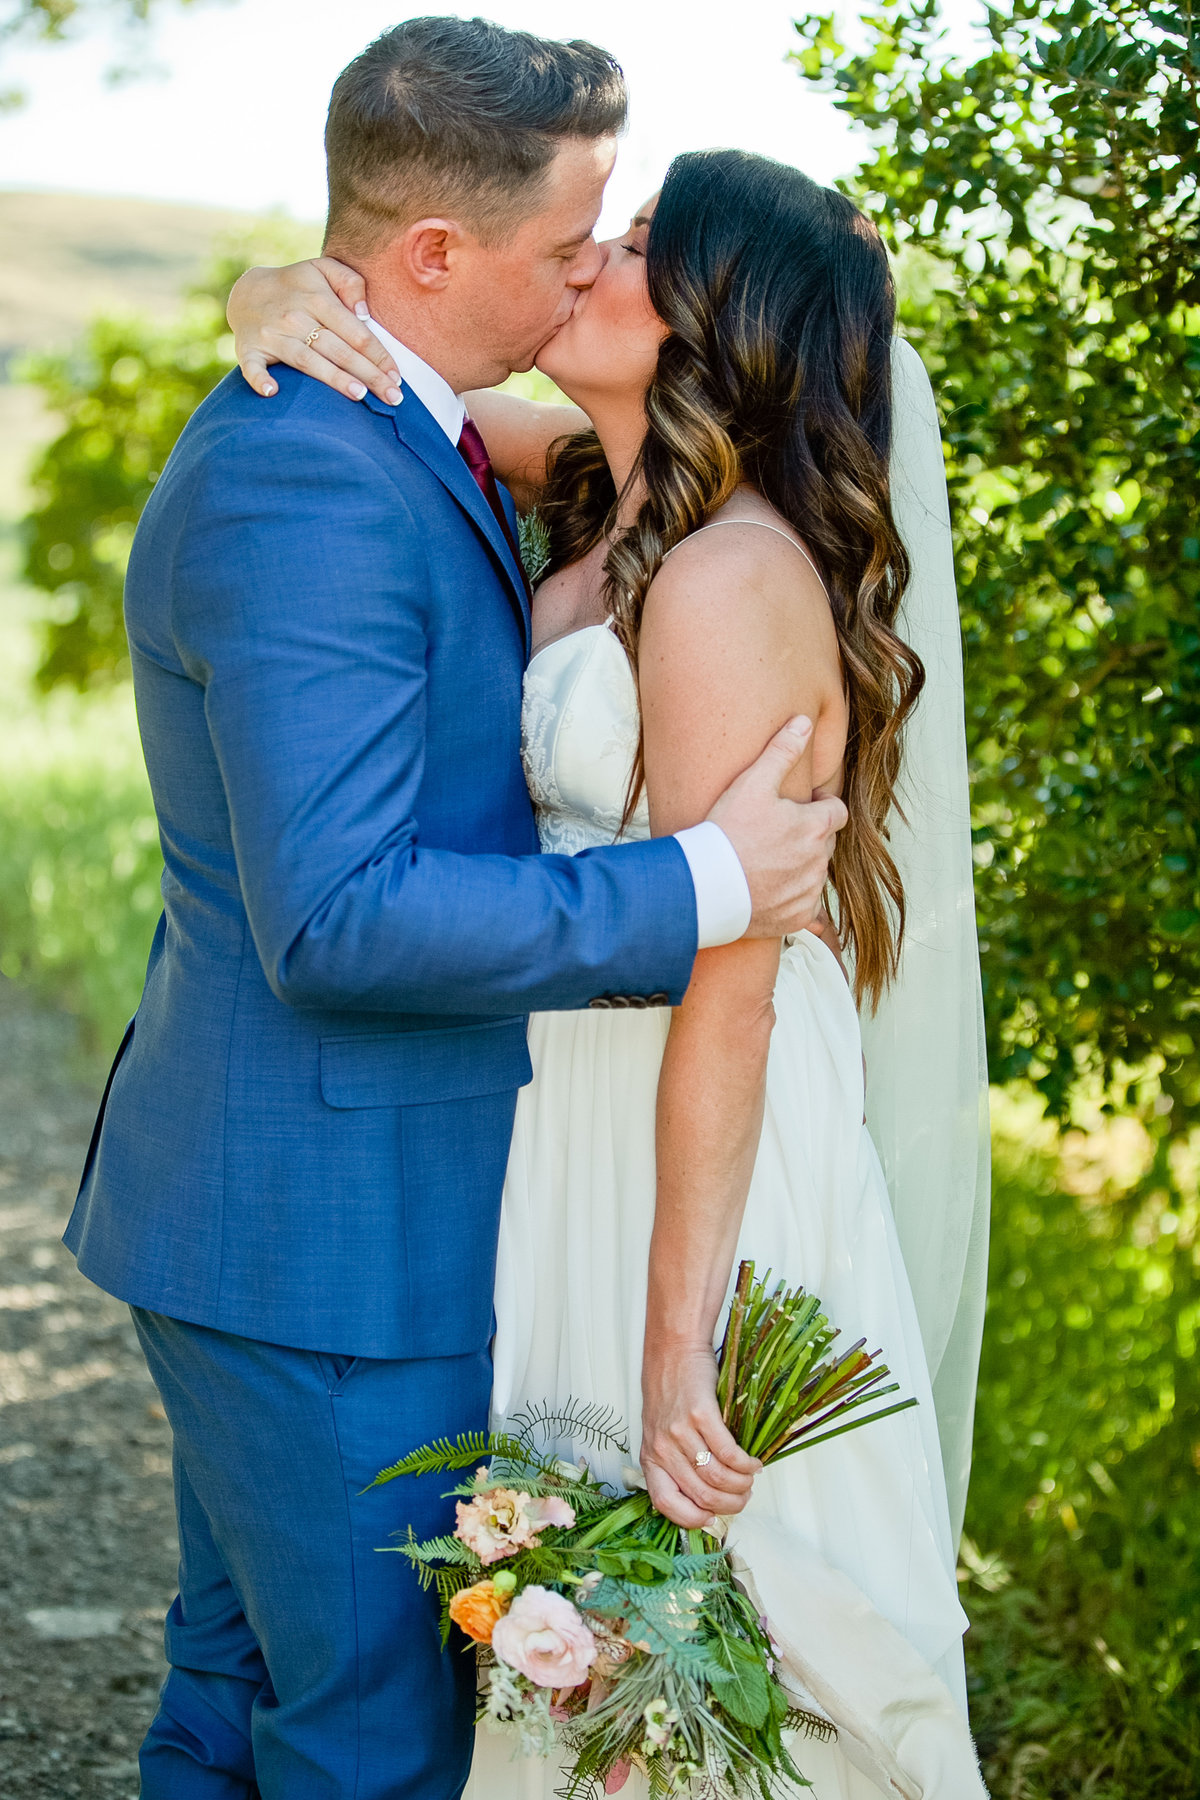 Romantic Spring Elopement  bride and groom in kissing with Spring bouquet at Higuera Ranch  in San Luis Obispo  by Amy Britton Photography Photographer in St. Louis